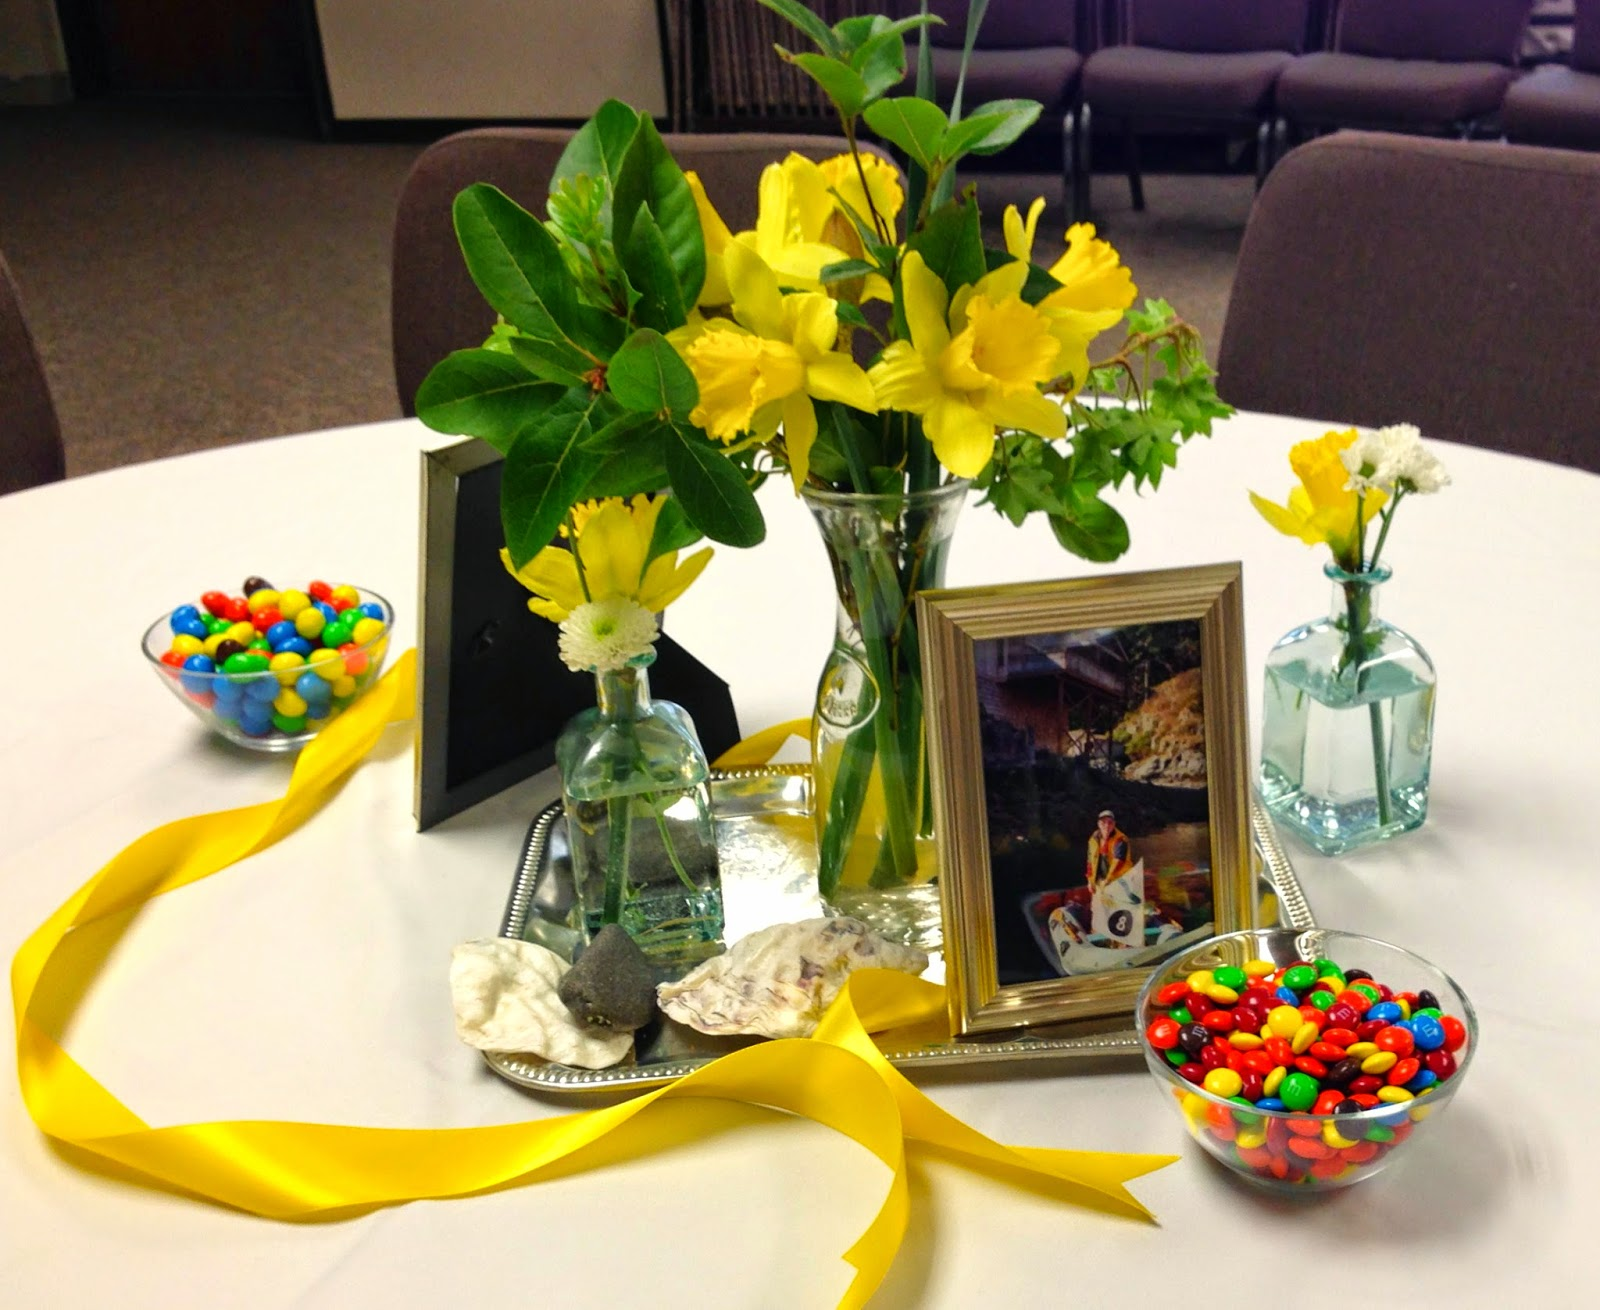 Mice Paige Blogs Decorating For A Celebration Of Life Memorial Service